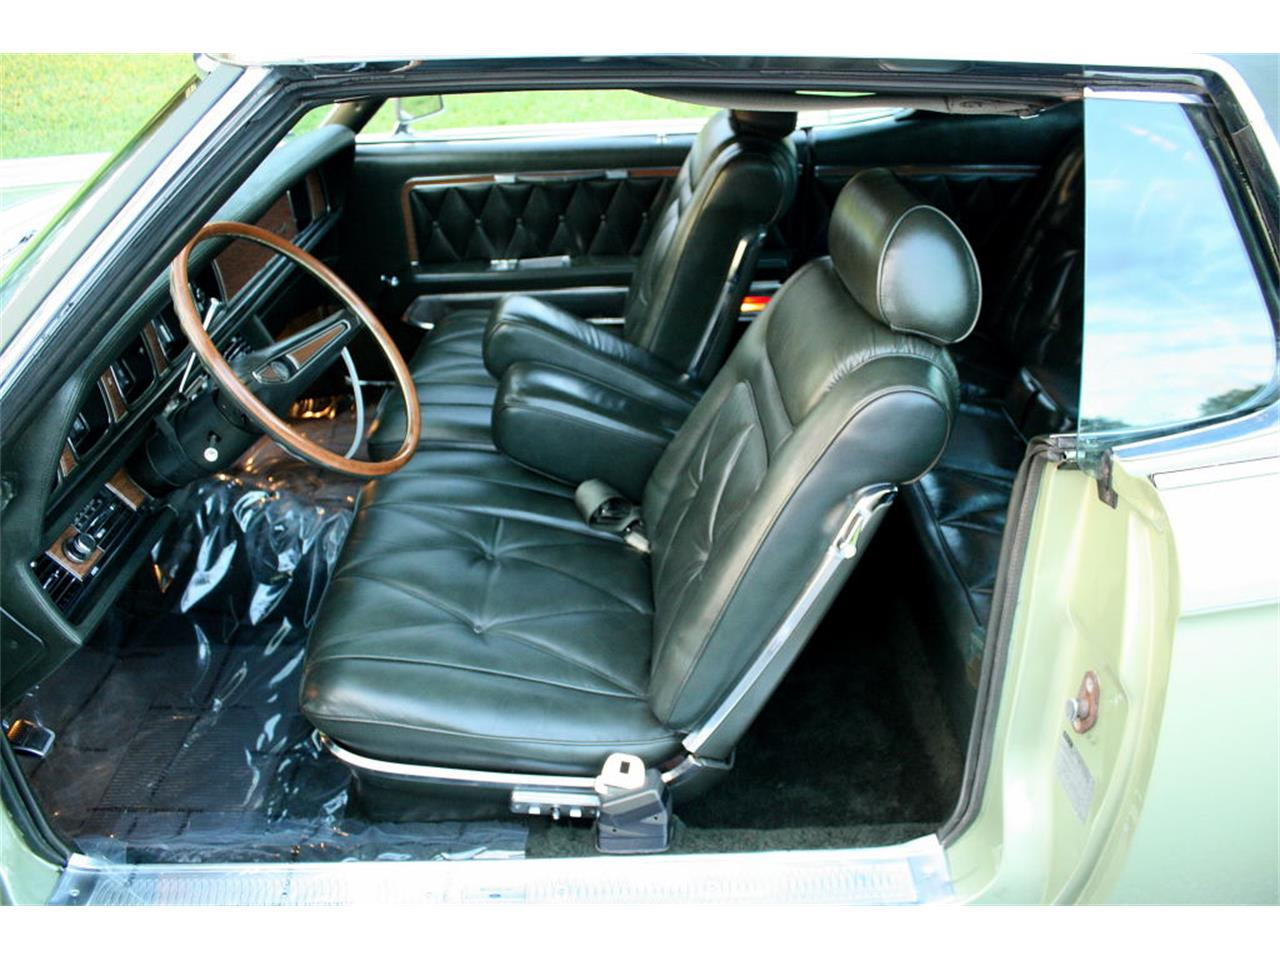 Large Picture of Classic '69 Lincoln Continental Mark III located in Lakeland Florida - $24,500.00 - OPDW